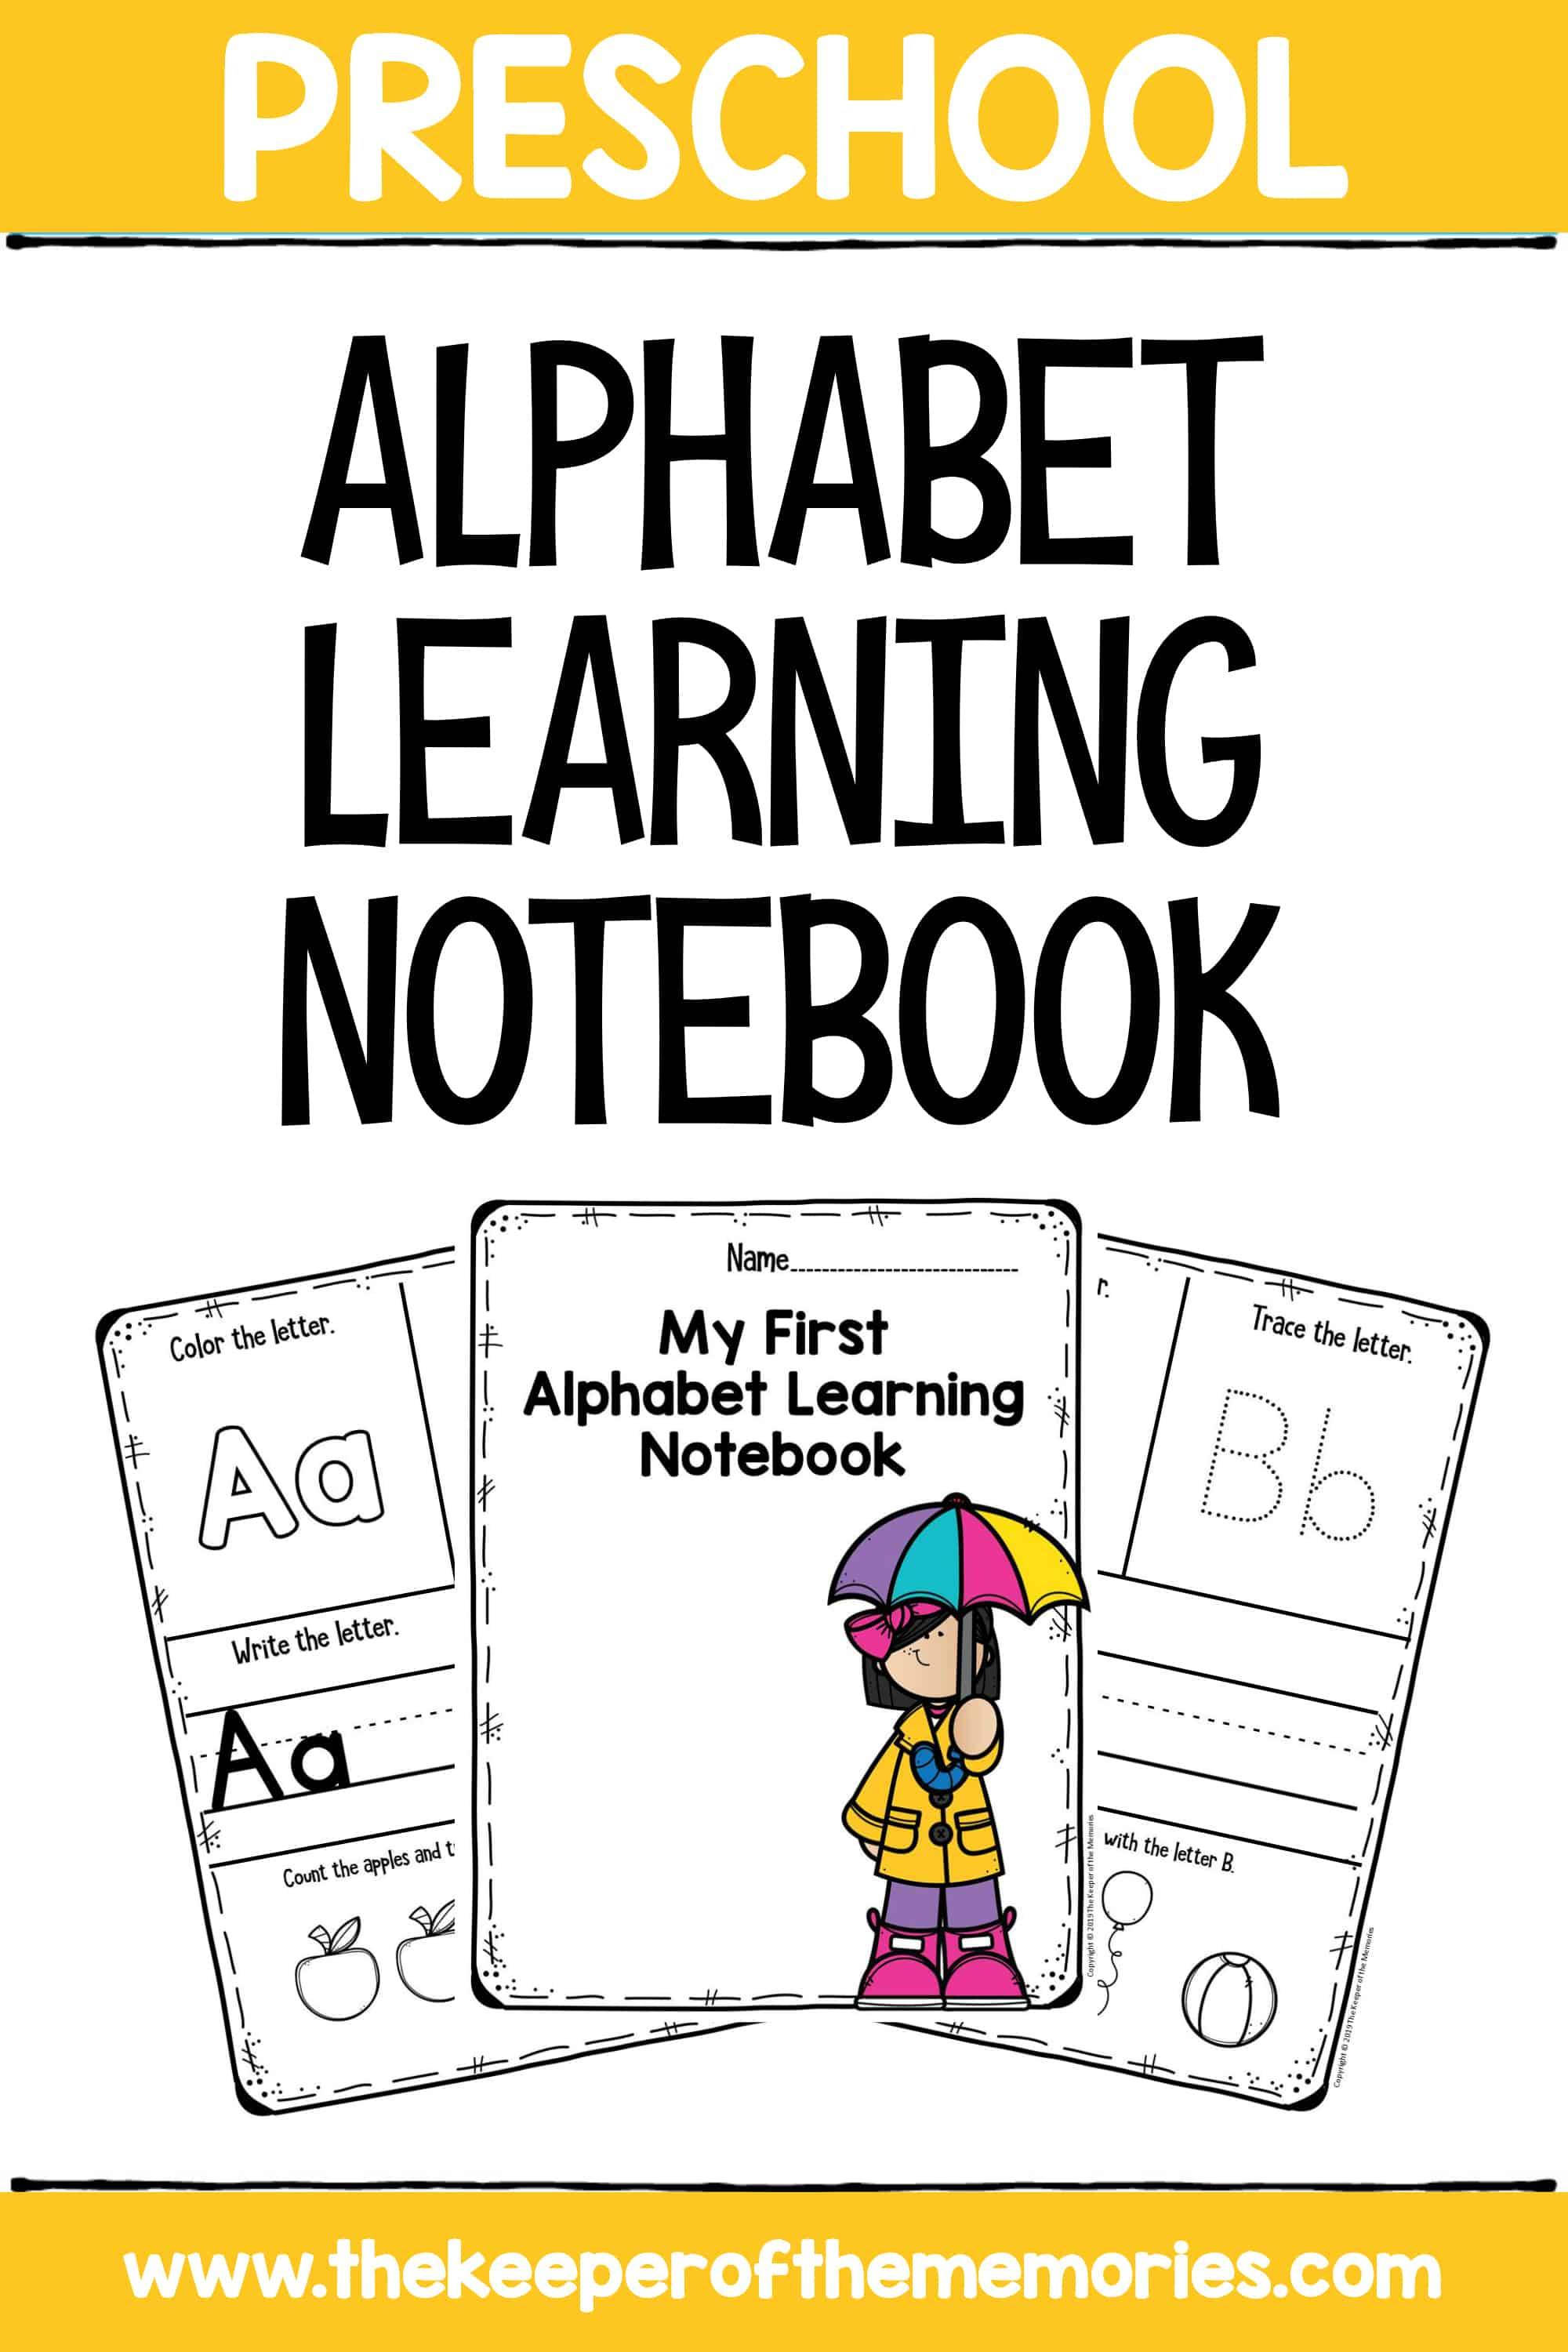 My First Alphabet Learning Notebook Letters Preschool Worksheets for Little Kids